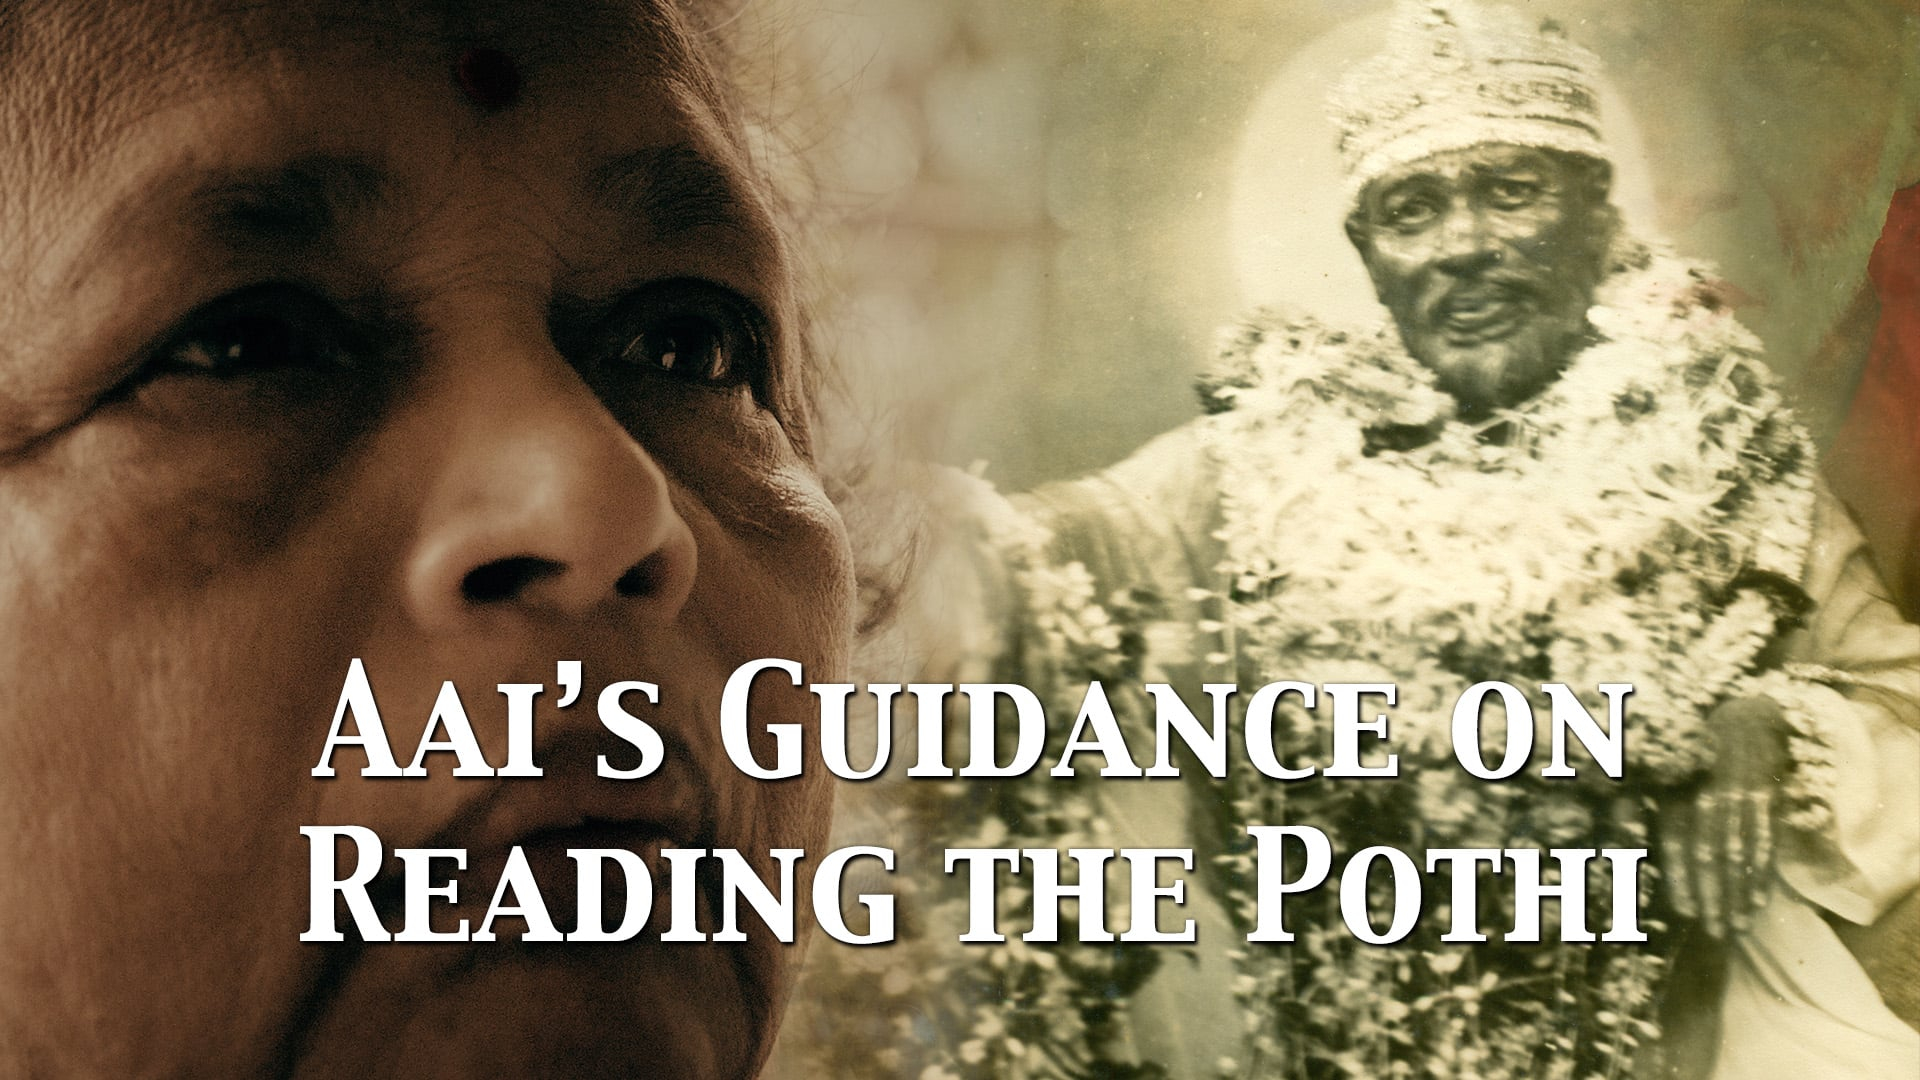 Aai's Guidance on Reading the Pothi